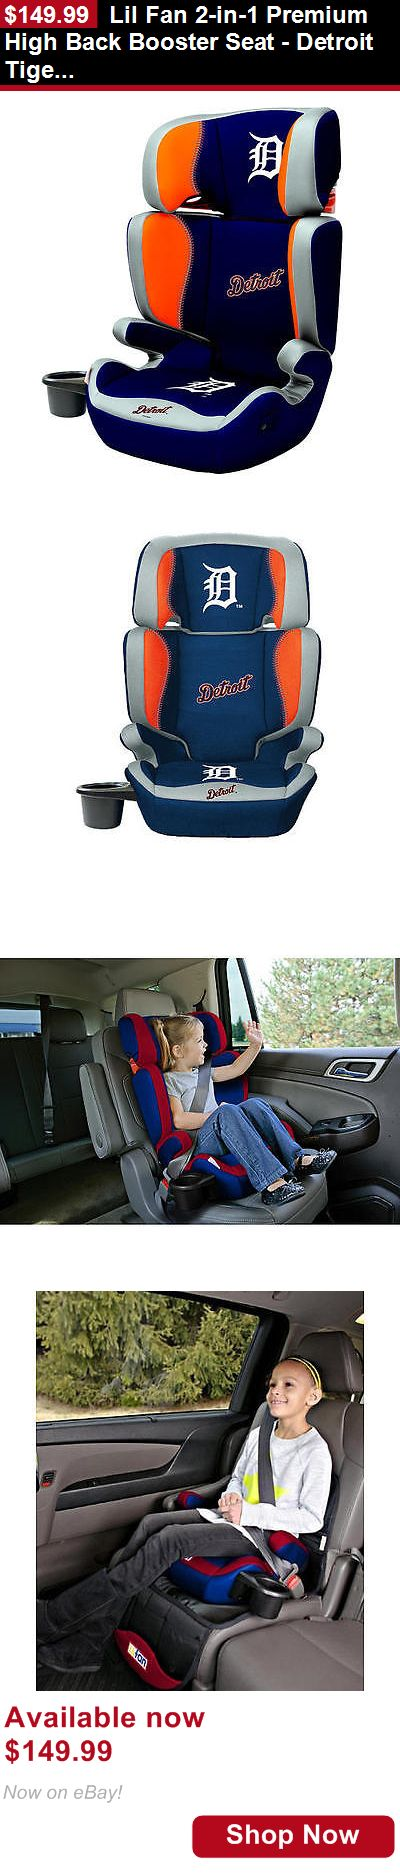 Other Baby Car Safety Seats: Lil Fan 2-In-1 Premium High Back Booster Seat - Detroit Tigers BUY IT NOW ONLY: $149.99